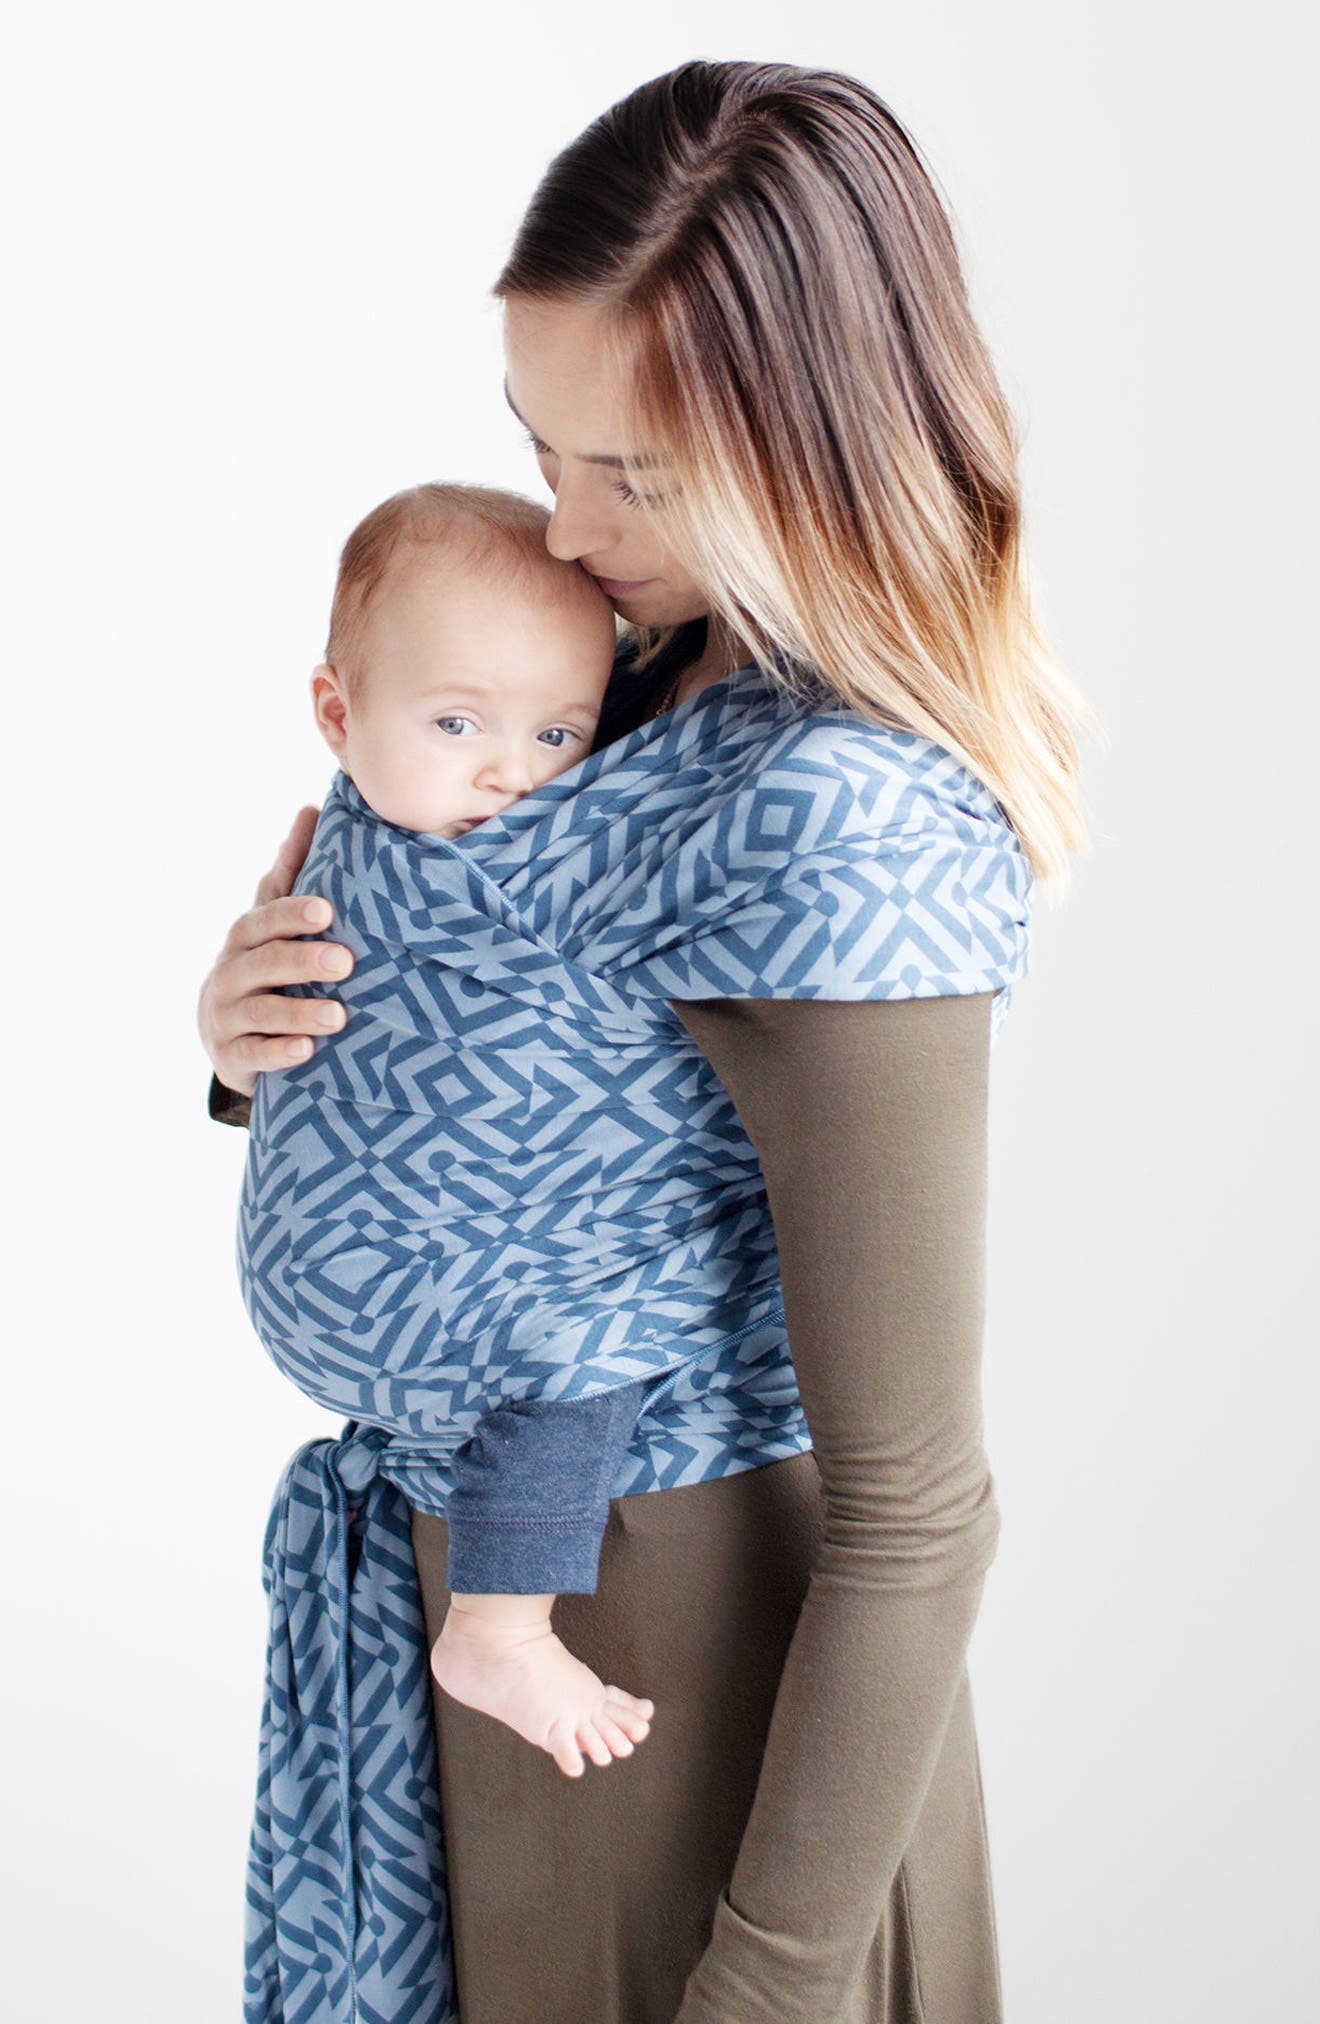 Alternate Image 1 Selected - Moby Wrap x Petunia Pickle Bottom Baby Carrier